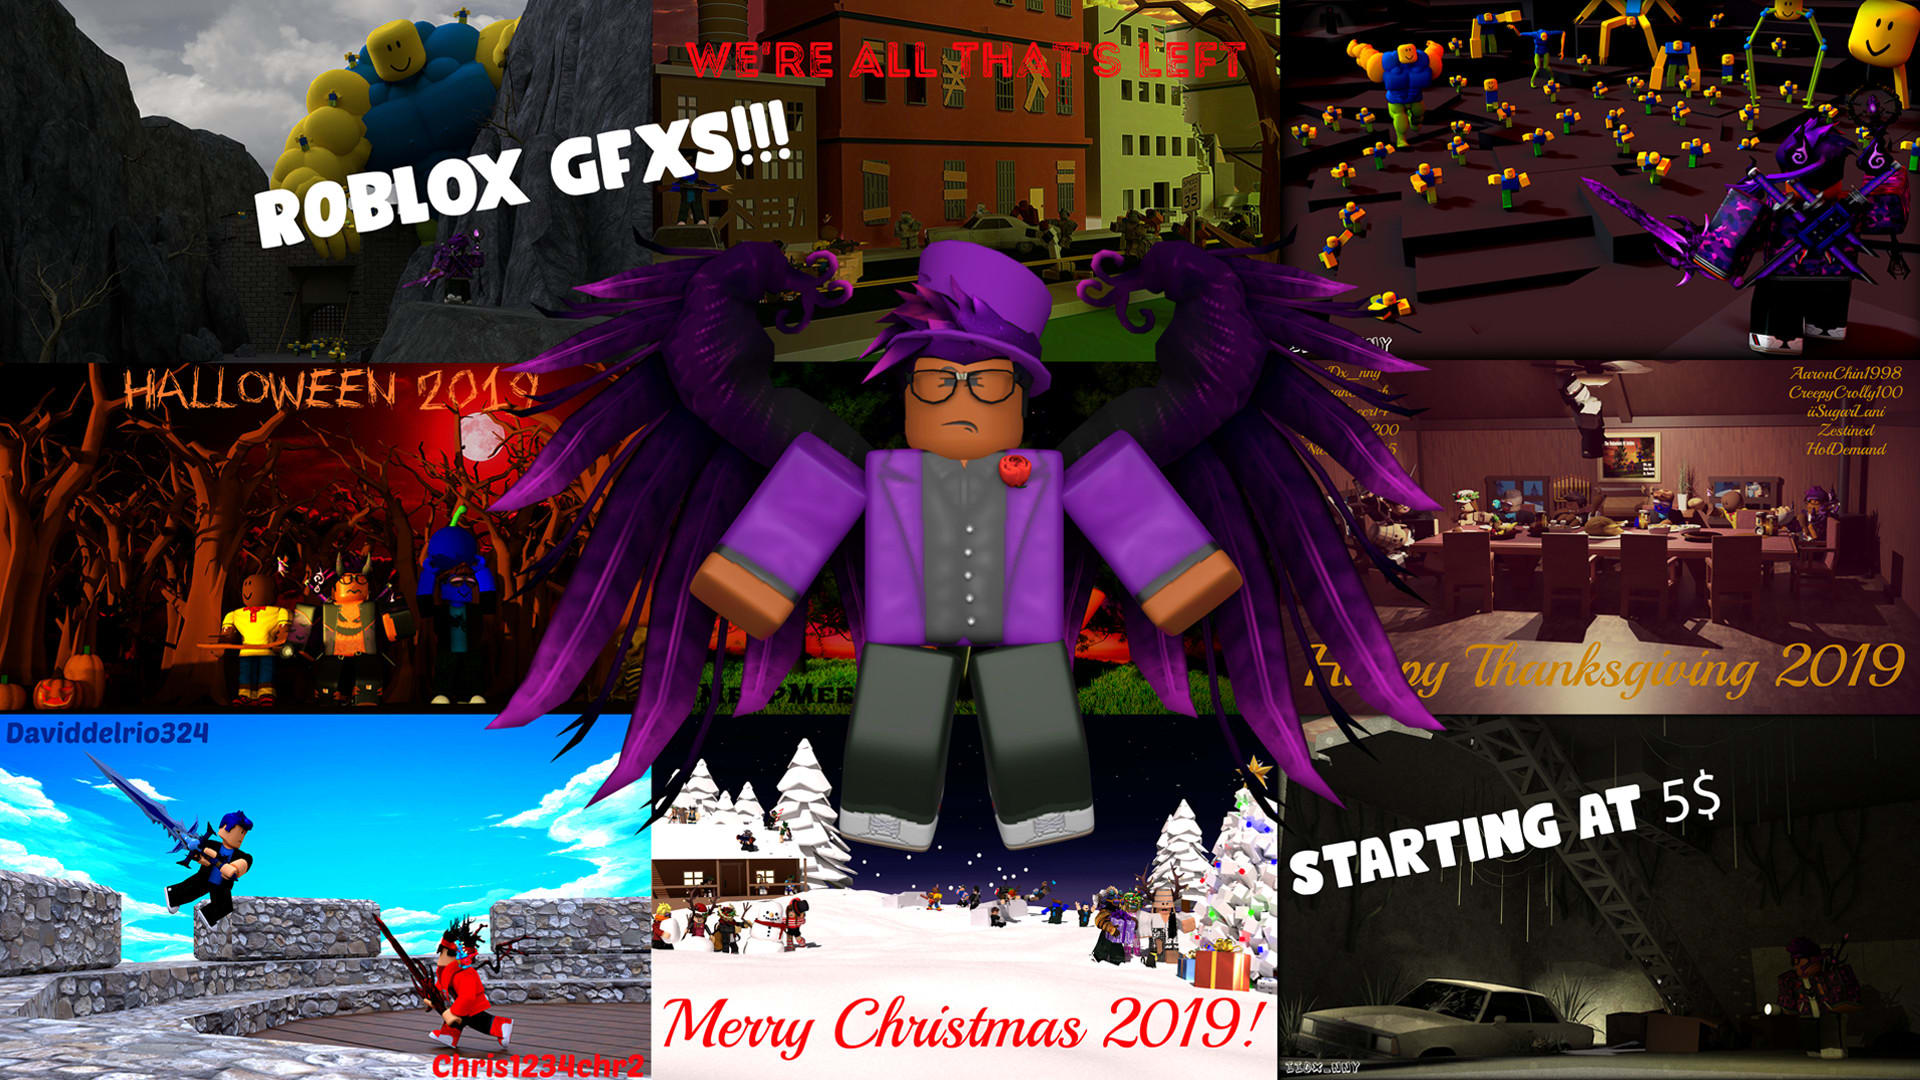 Make A Roblox Gfx For You By Emptystar